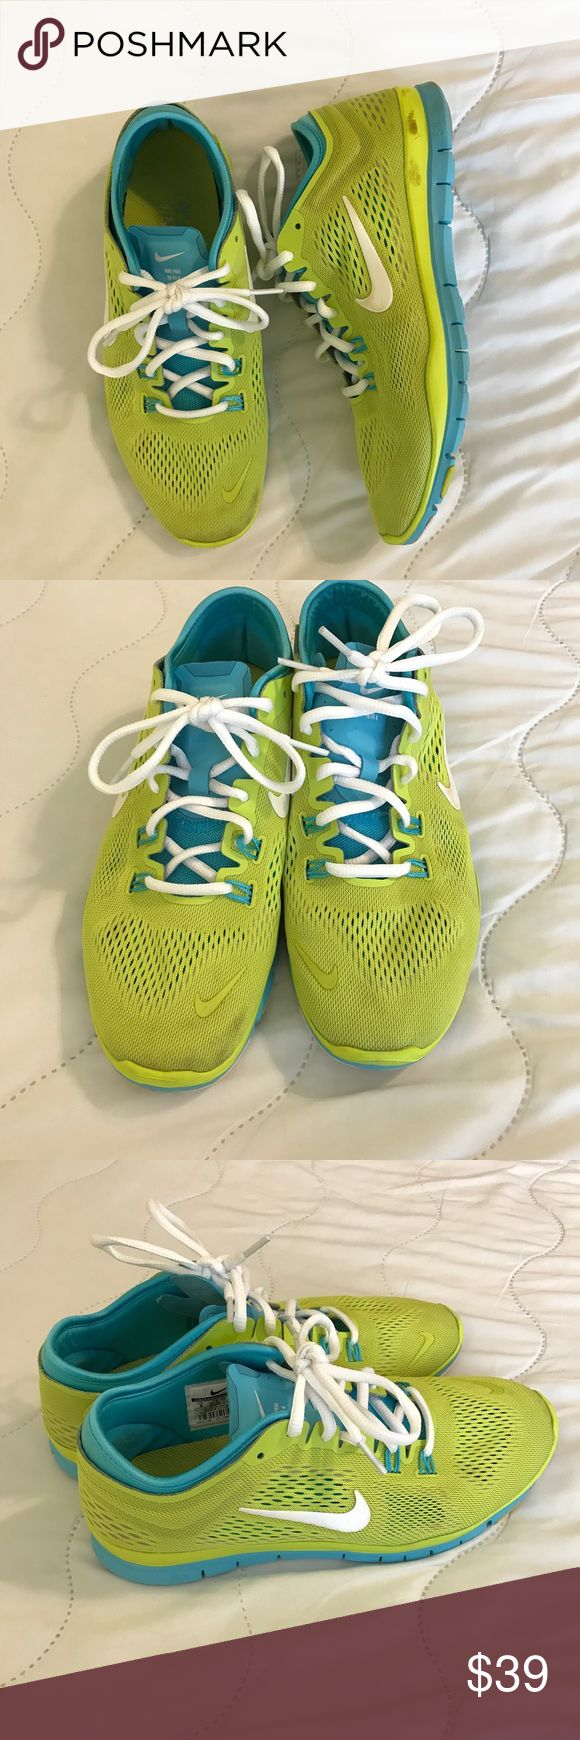 Green and teal NIKE shoes size 9 Worn, but still good wearable condition! These are comfortable and make a statement. Can be washed further to clean toes further. Bundle to save ✨✨✨🎉🎉 Nike Shoes Athletic Shoes